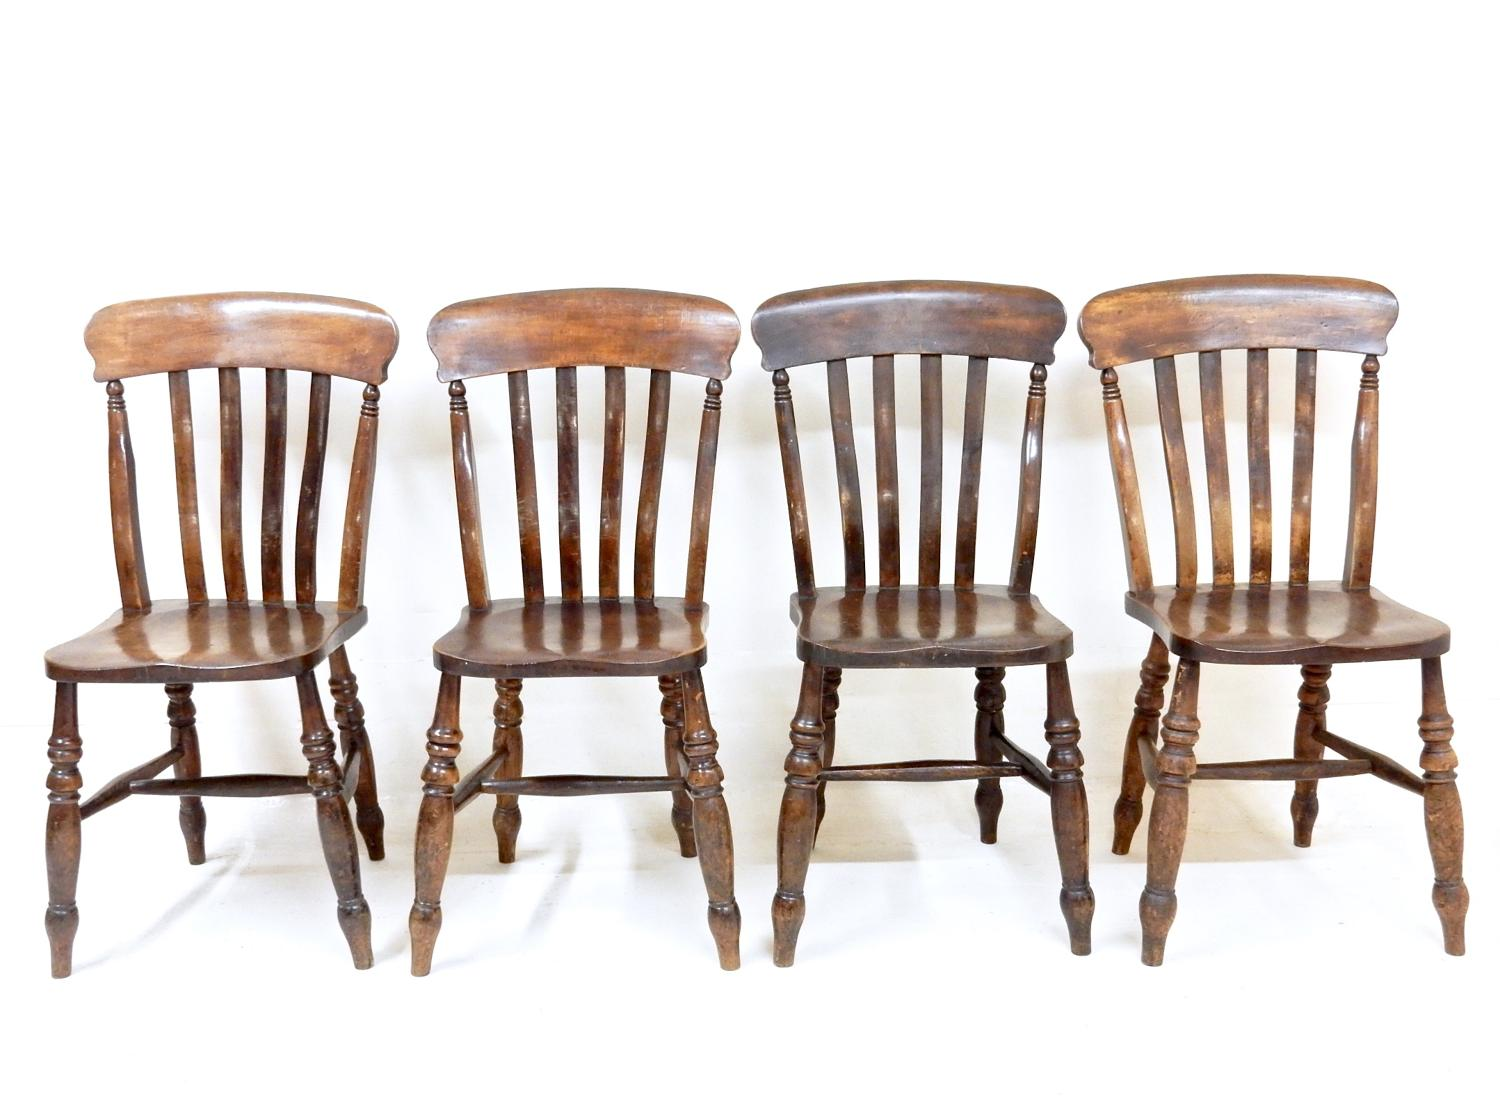 Antique kitchen dining chairs in tables and chairs for Kitchen chairs